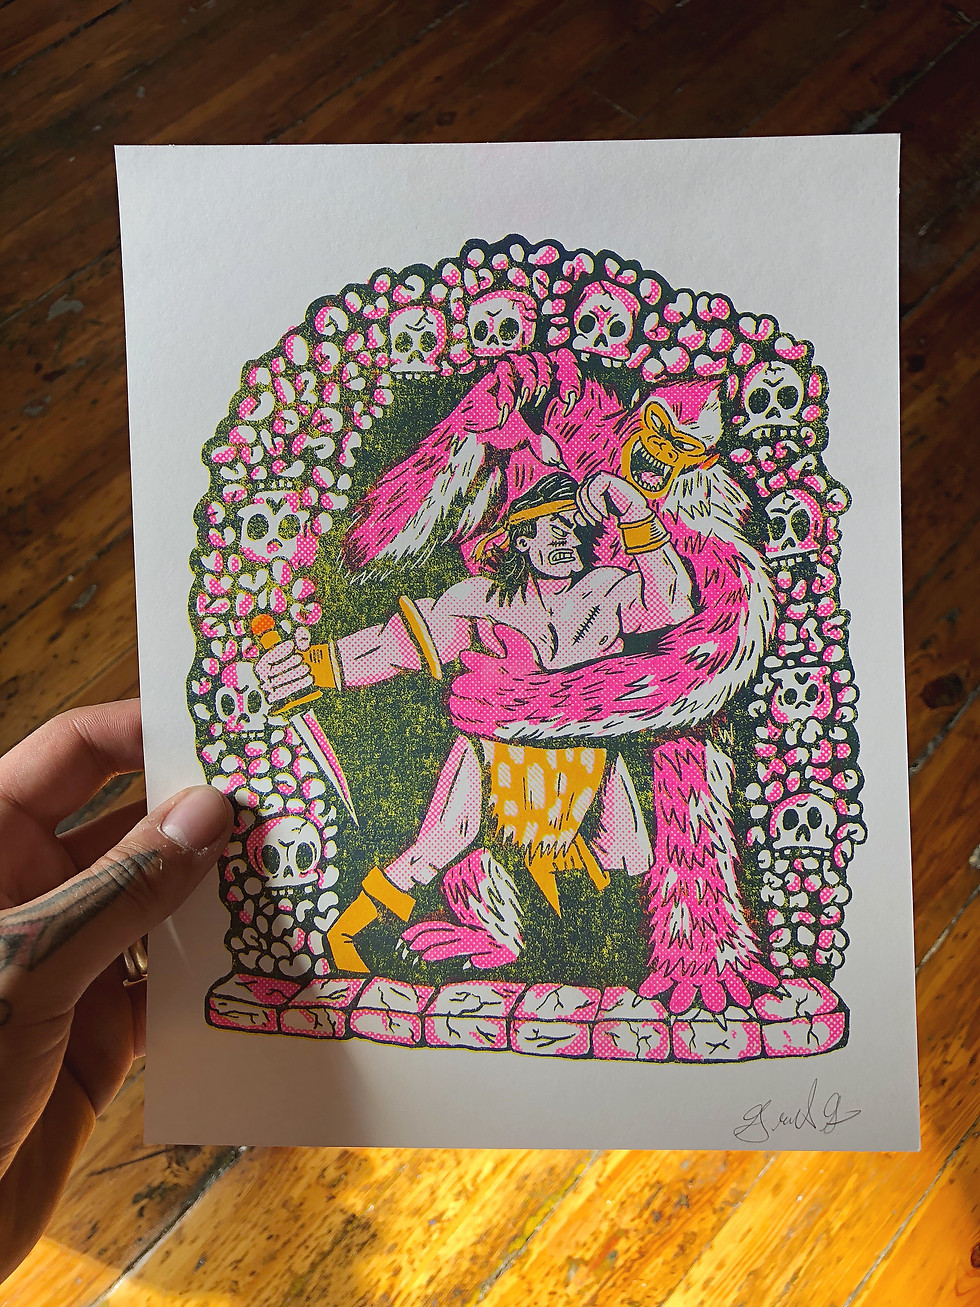 Savage of the Catacombs riso print